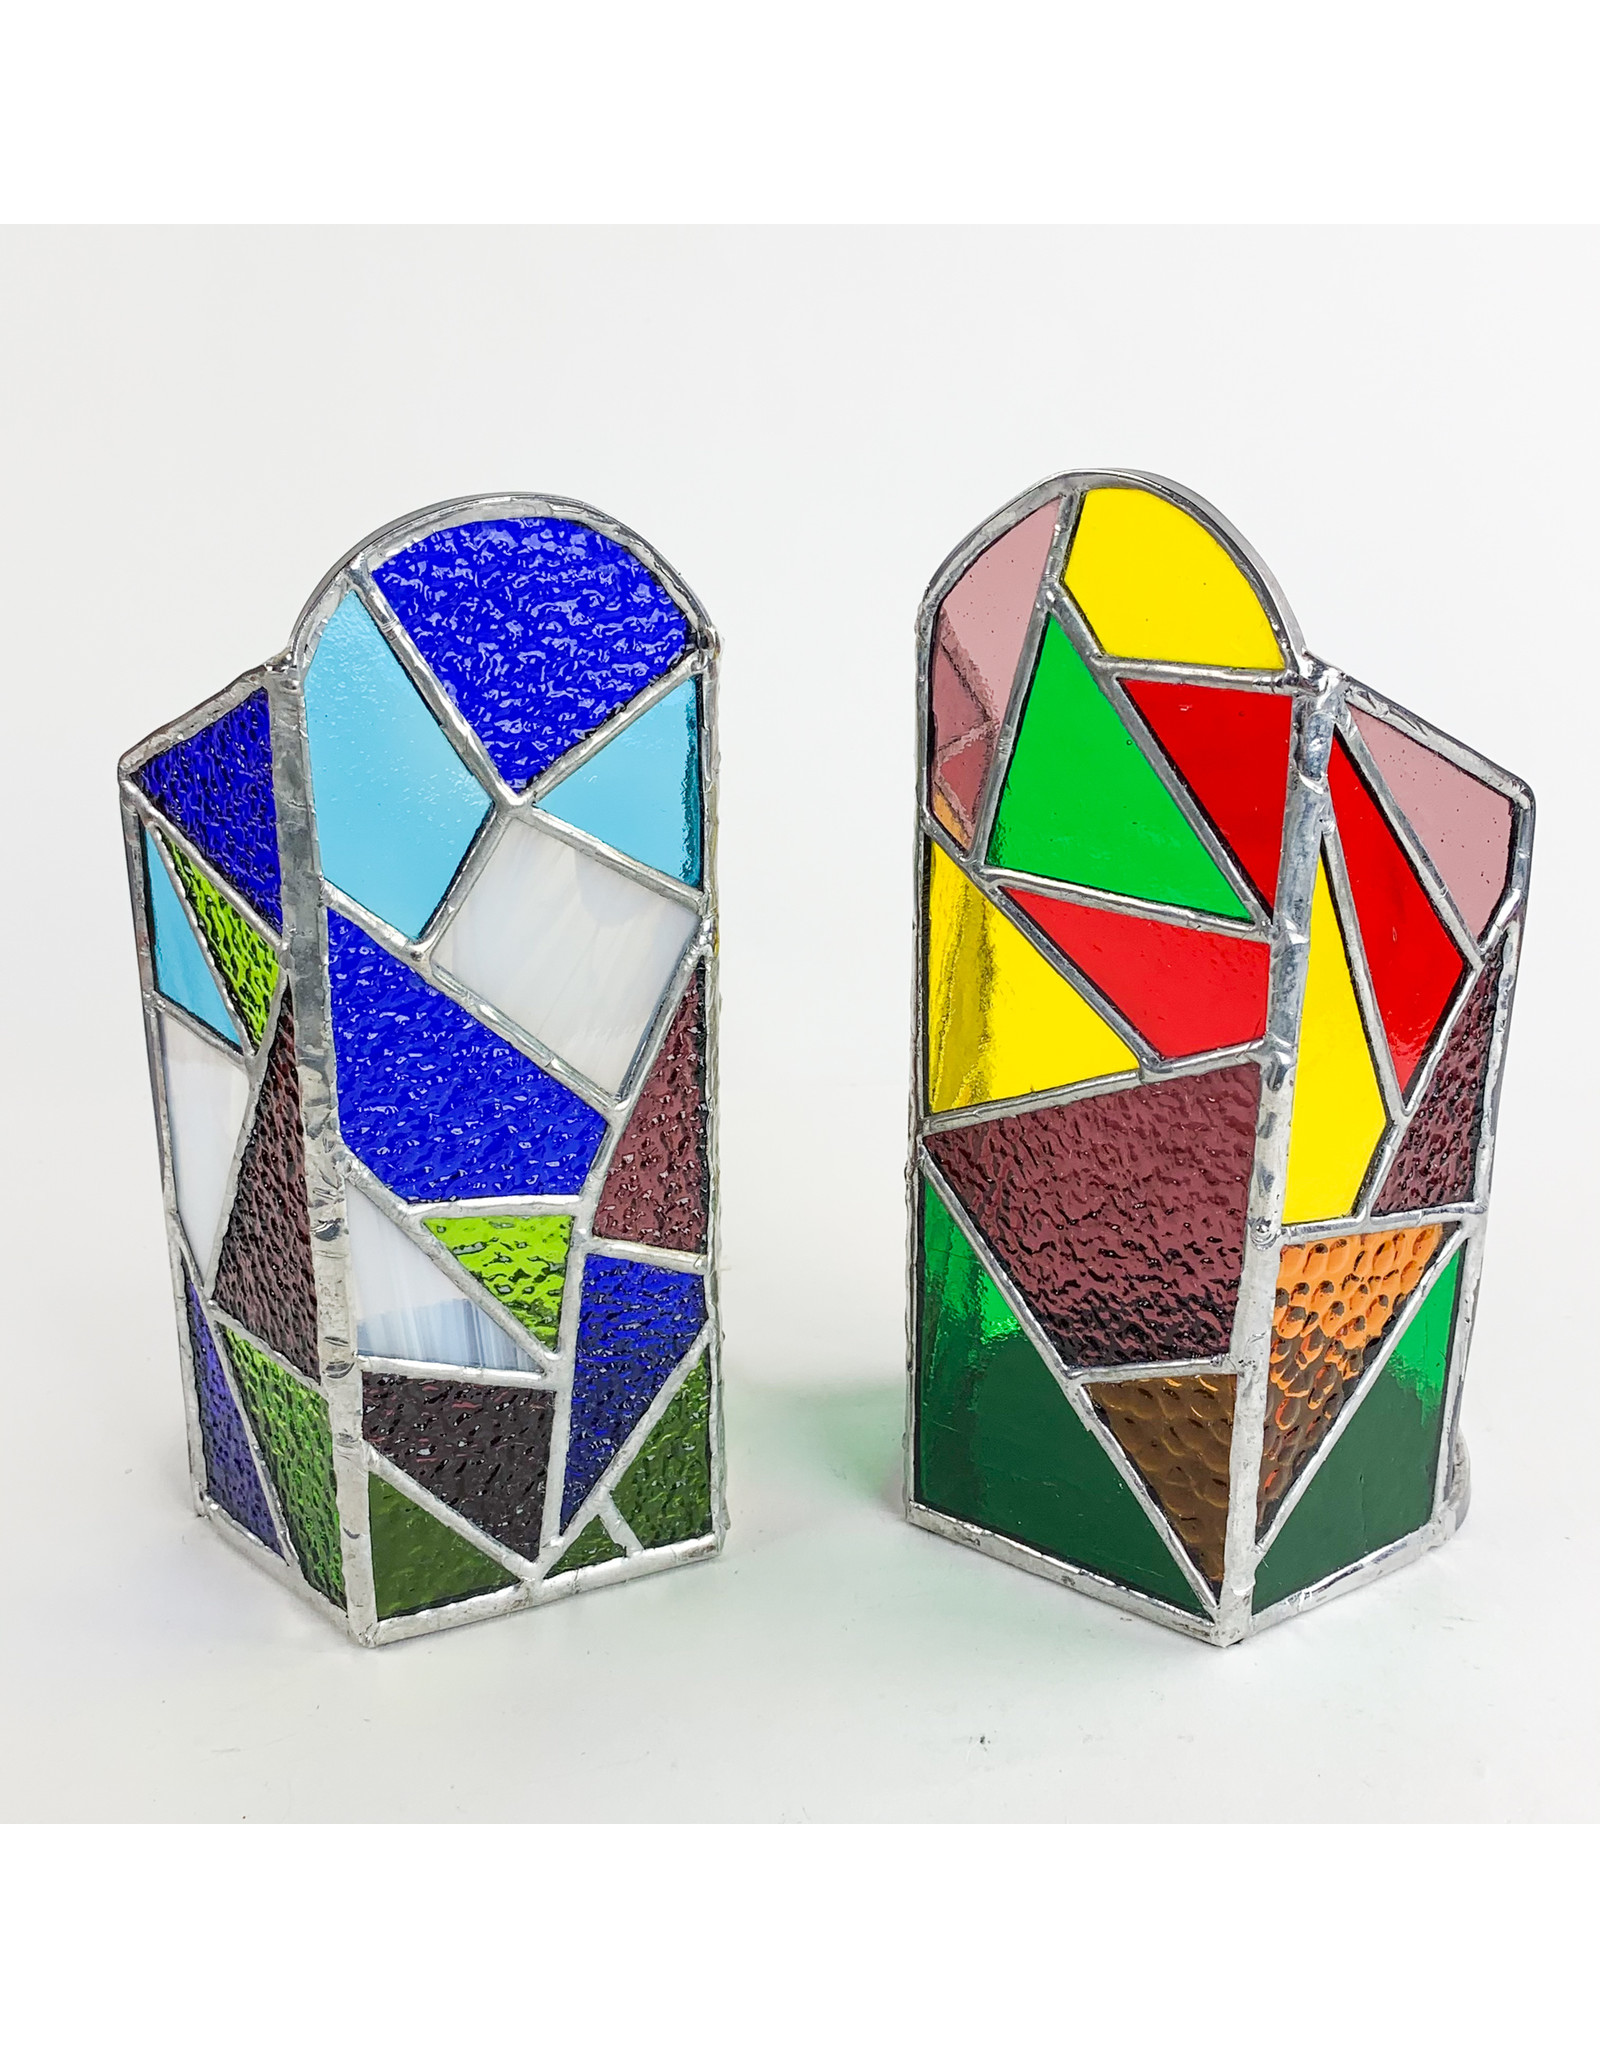 Reverberation Stained Glass - Consignment Candle Holder Cool Psych Consignment